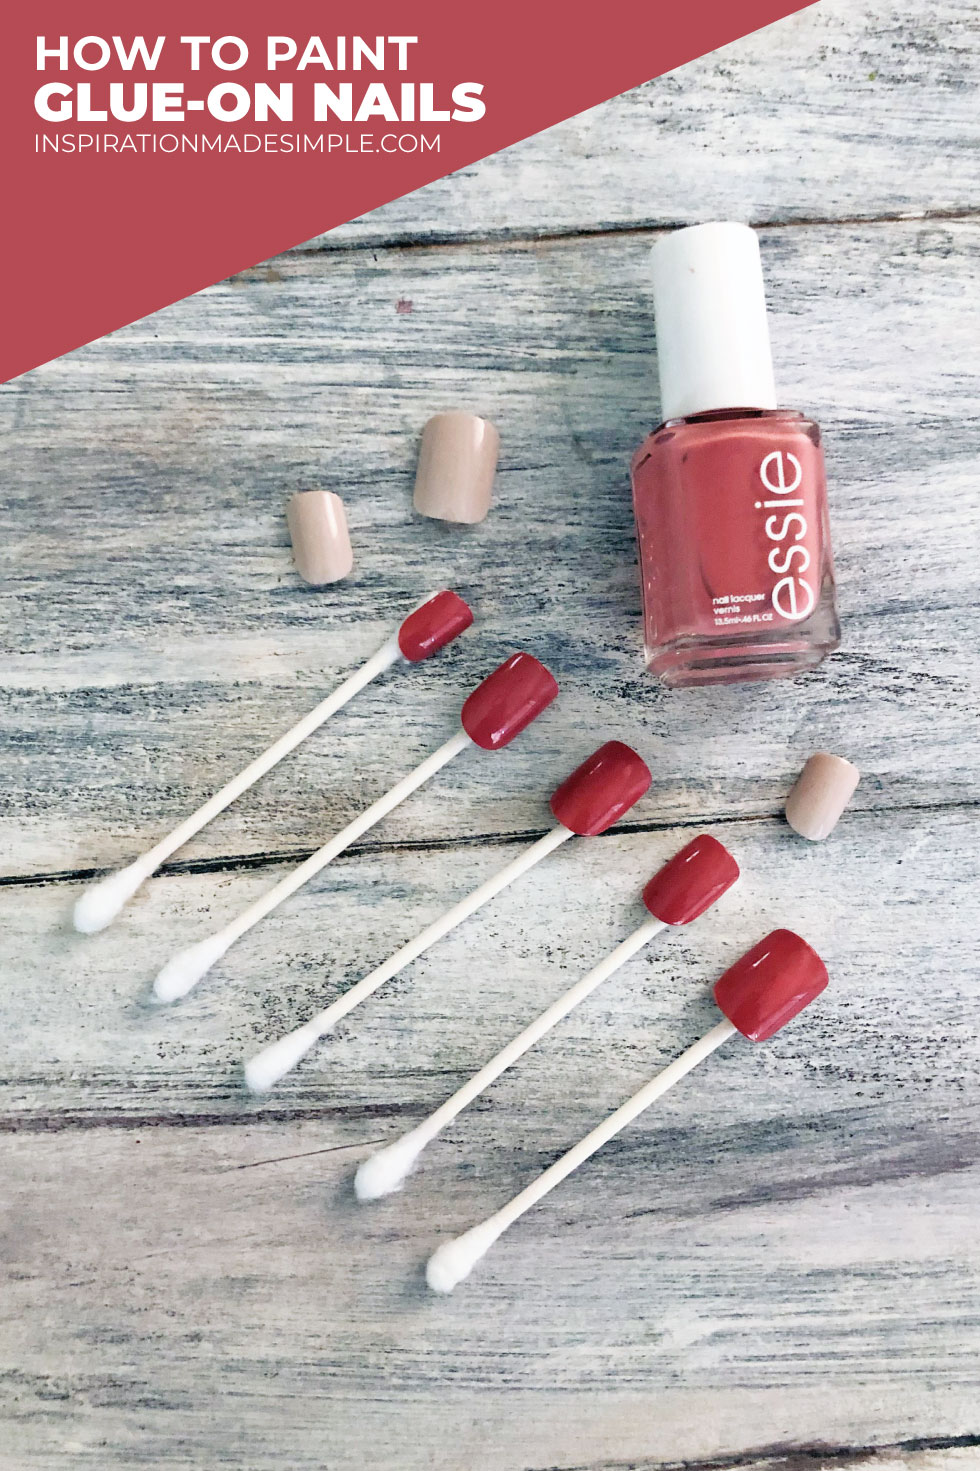 How to paint glue-on nails